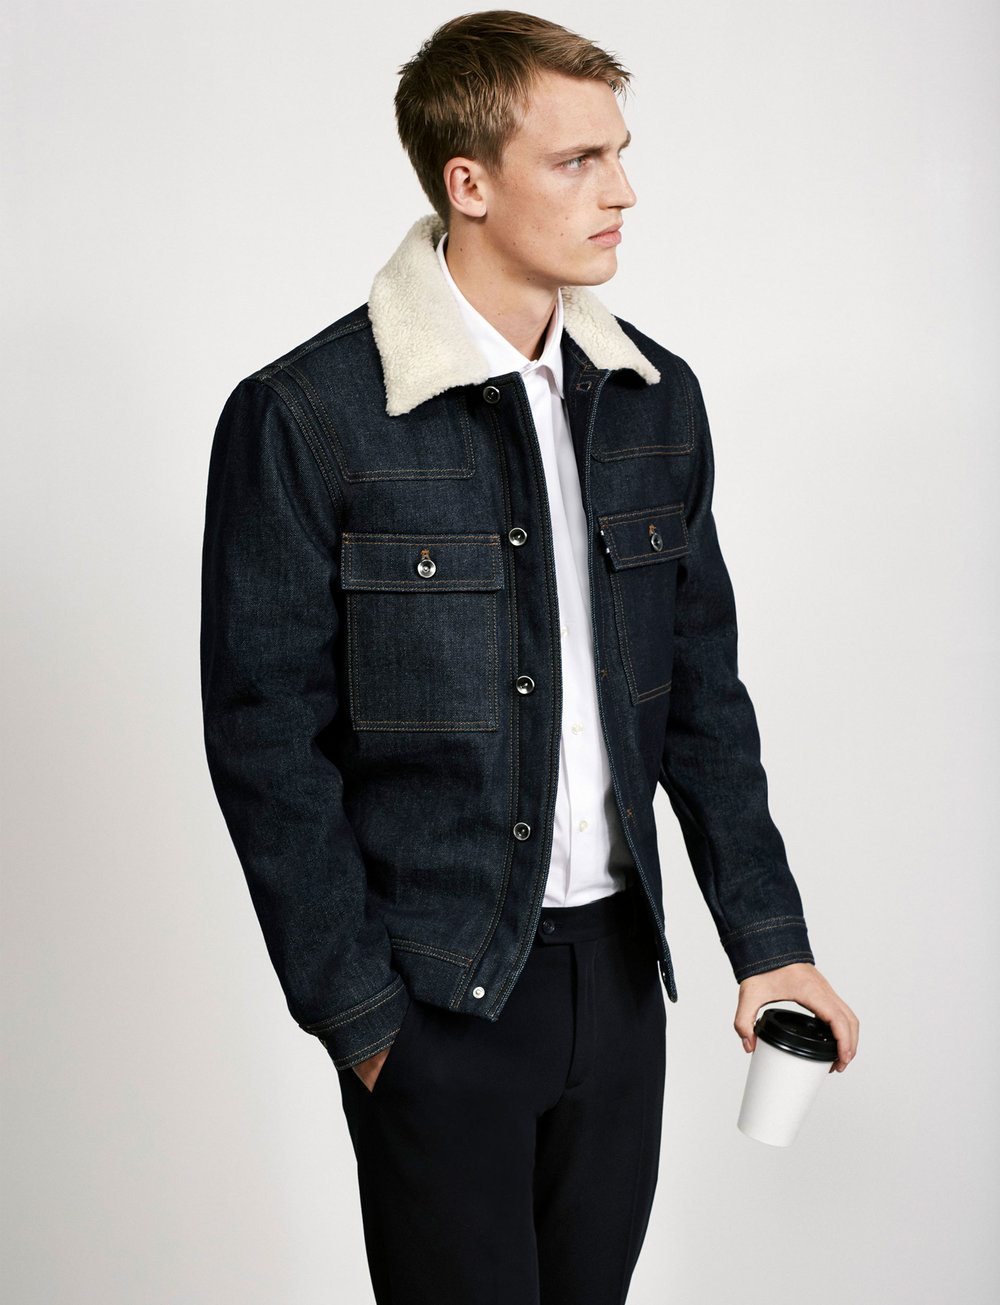 Zara Men shirling denim jacket